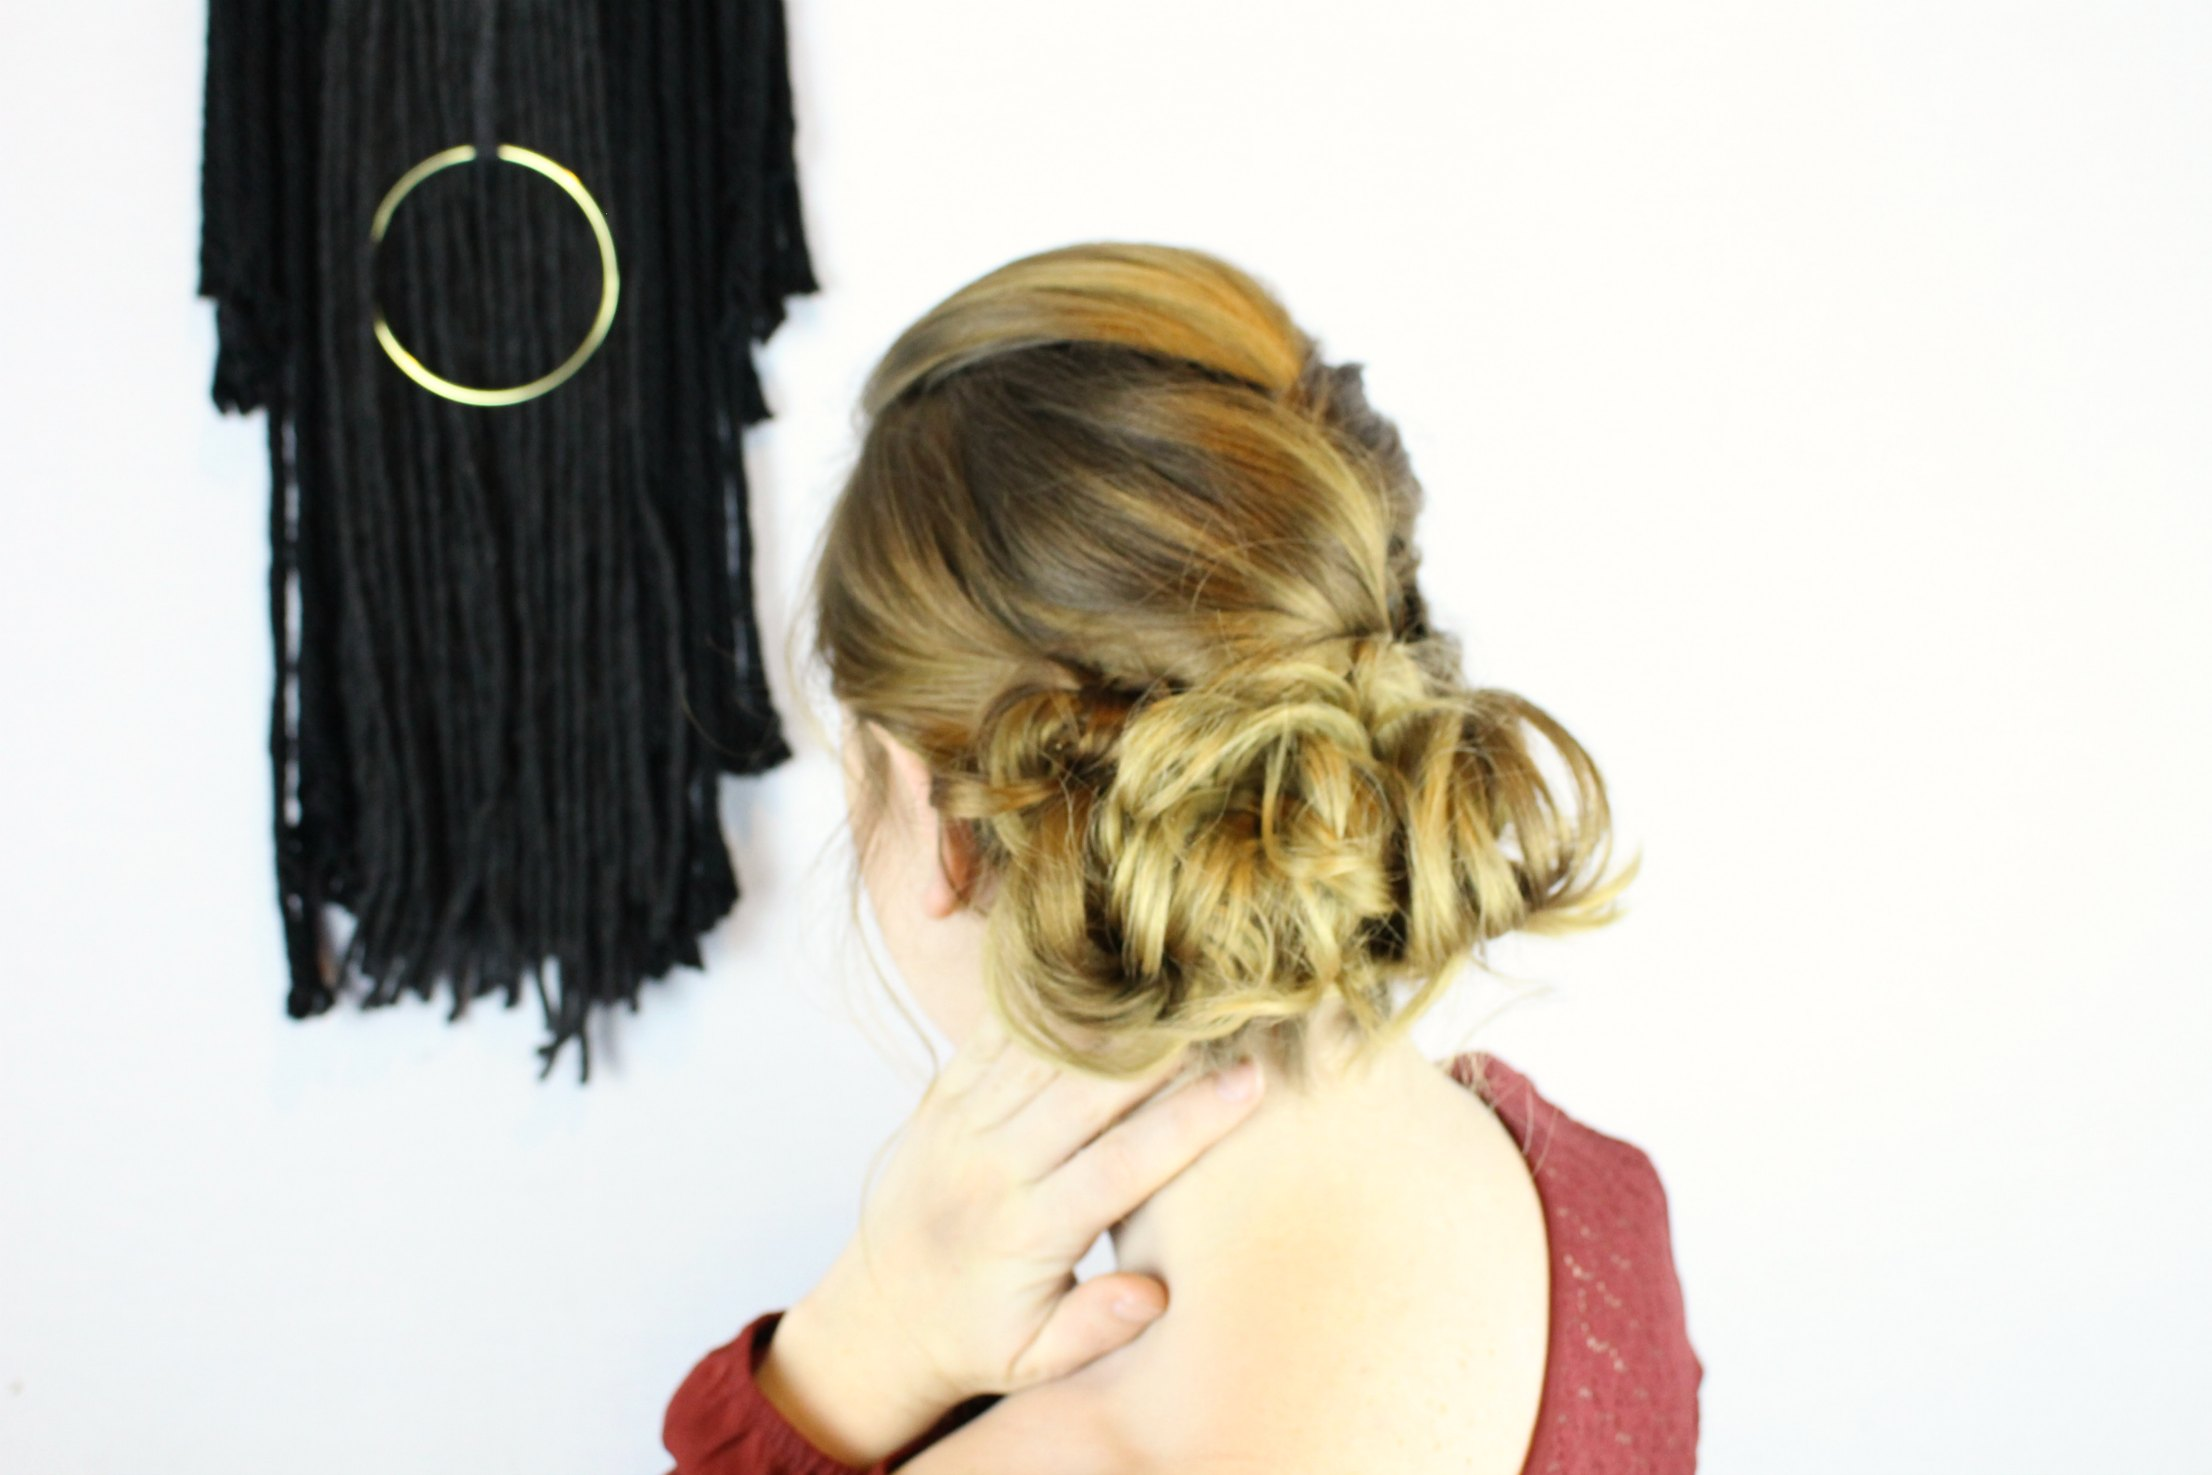 Updo hair tutorial that is good for any skill level - video tutorial included!